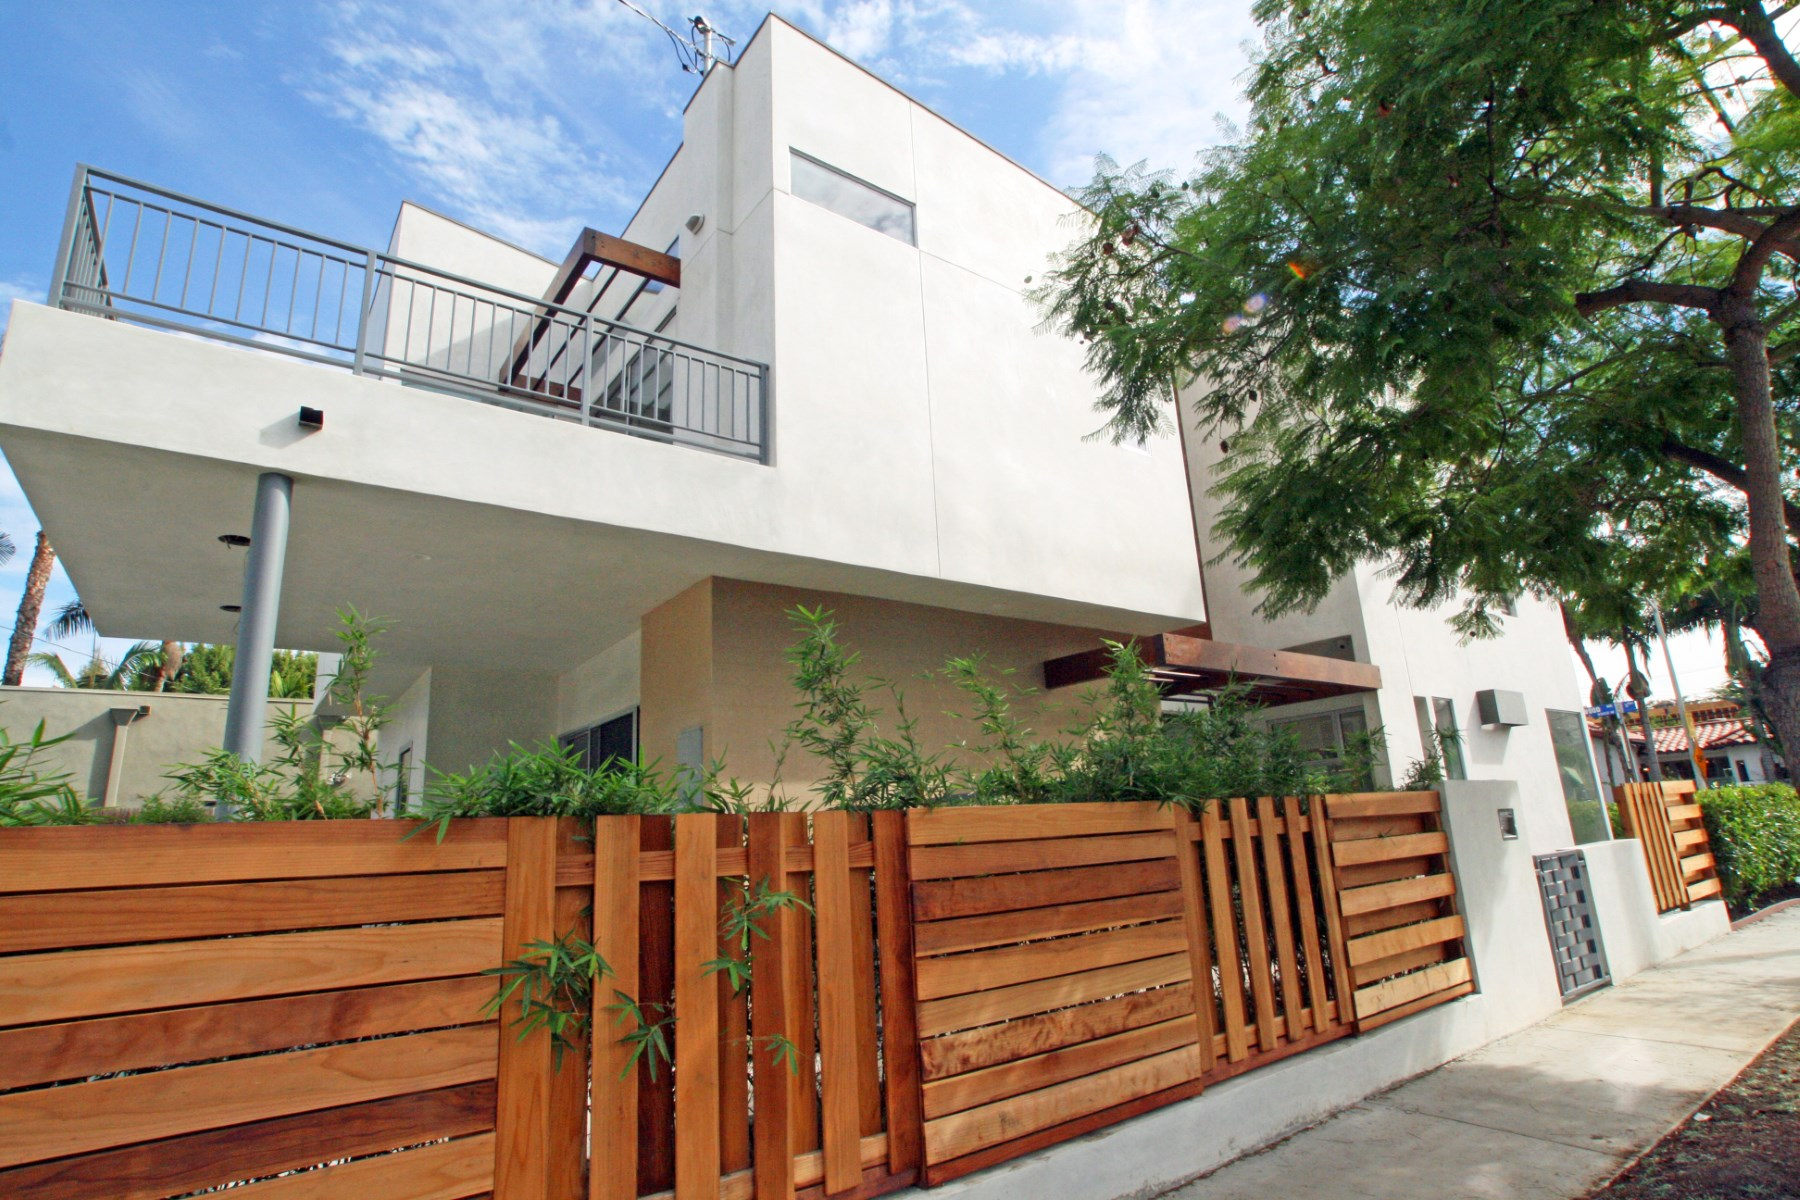 Single Family Home for Sale at Brand New Contemporary 2 Story Smart Home 8949 Rosewood Avenue West Hollywood, California 90048 United States